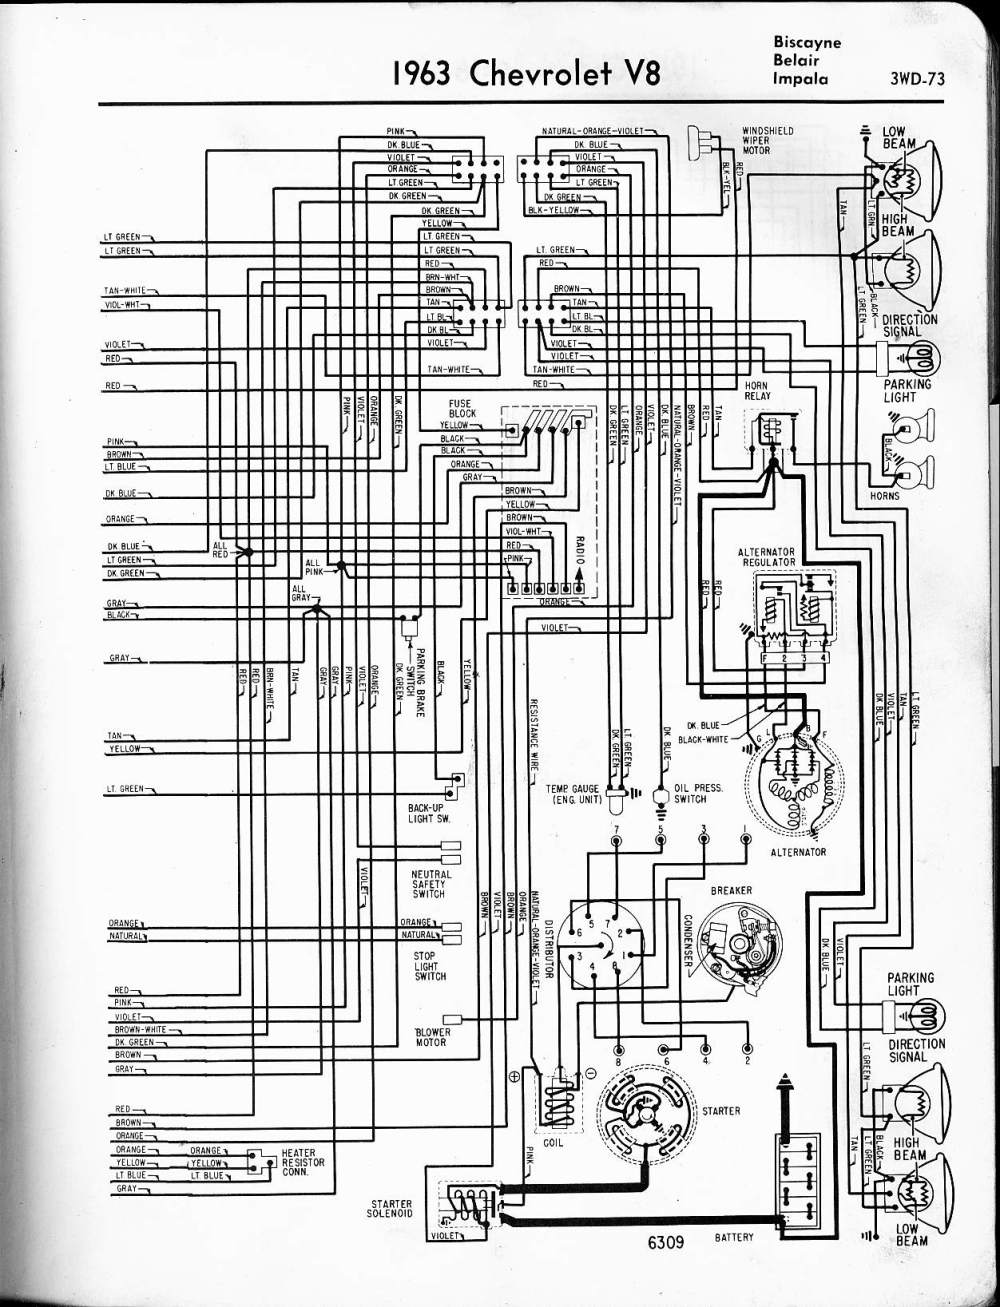 medium resolution of 57 65 chevy wiring diagrams 1964 impala starter wiring diagram 1963 v8 biscayne belair